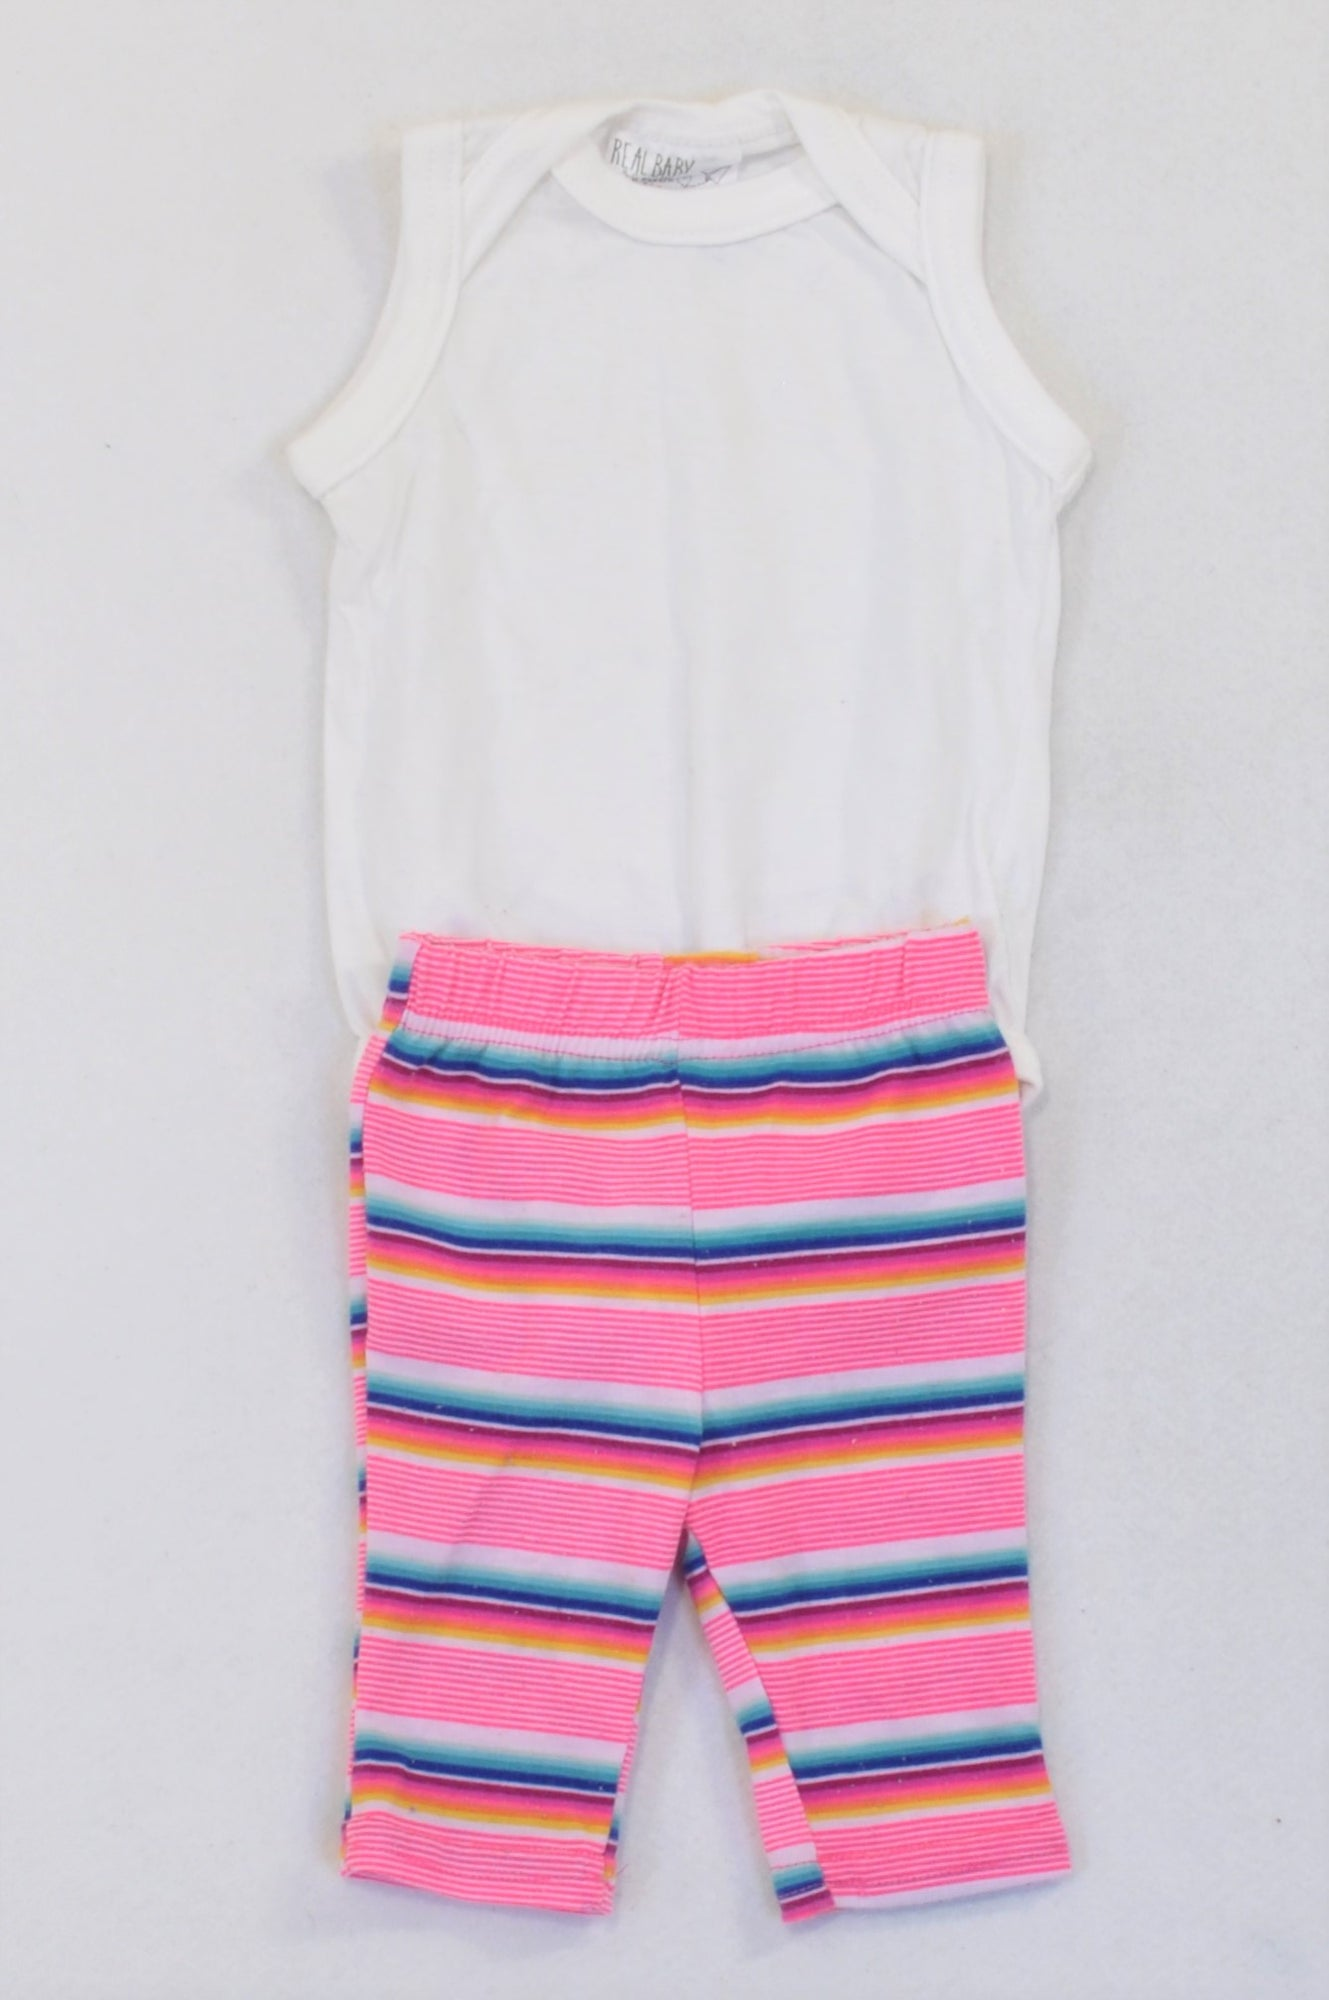 Pick 'n Pay White Vest & Lumo Striped Leggings Outfit Girls 3-6 months